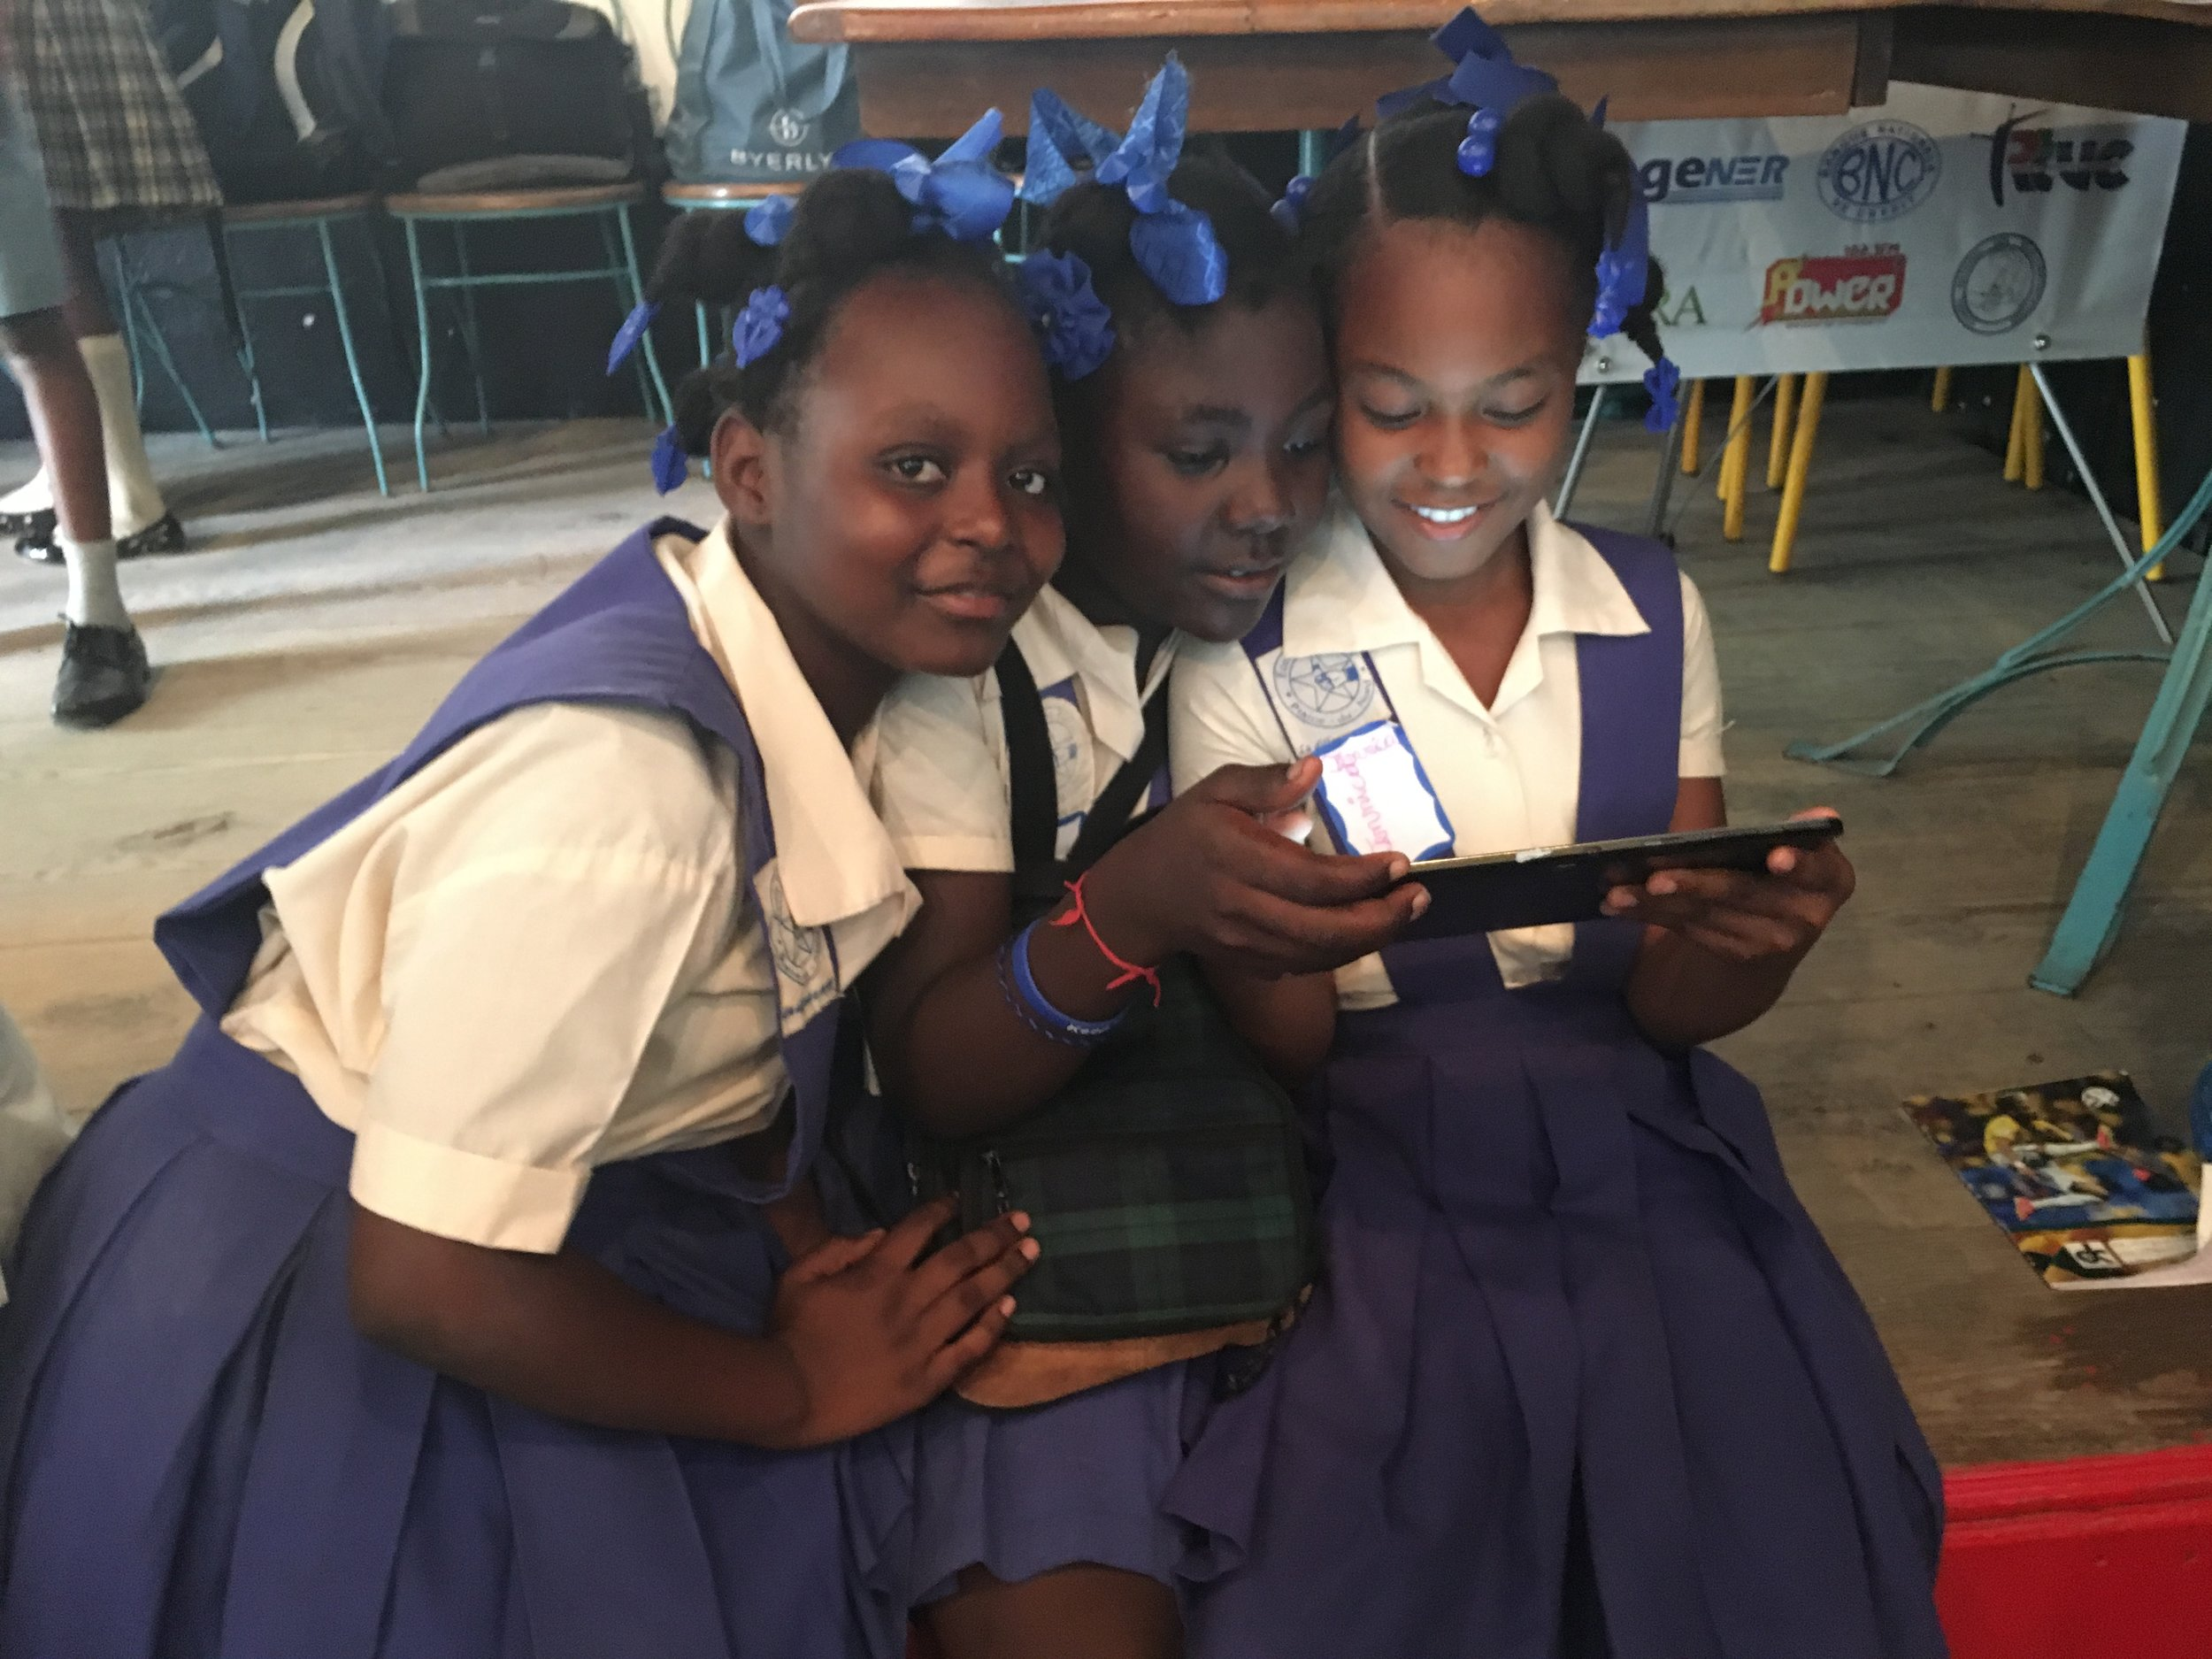 What happens with Haiti's children learn how to code, solve problems, collaborate, and think? A brighter future.